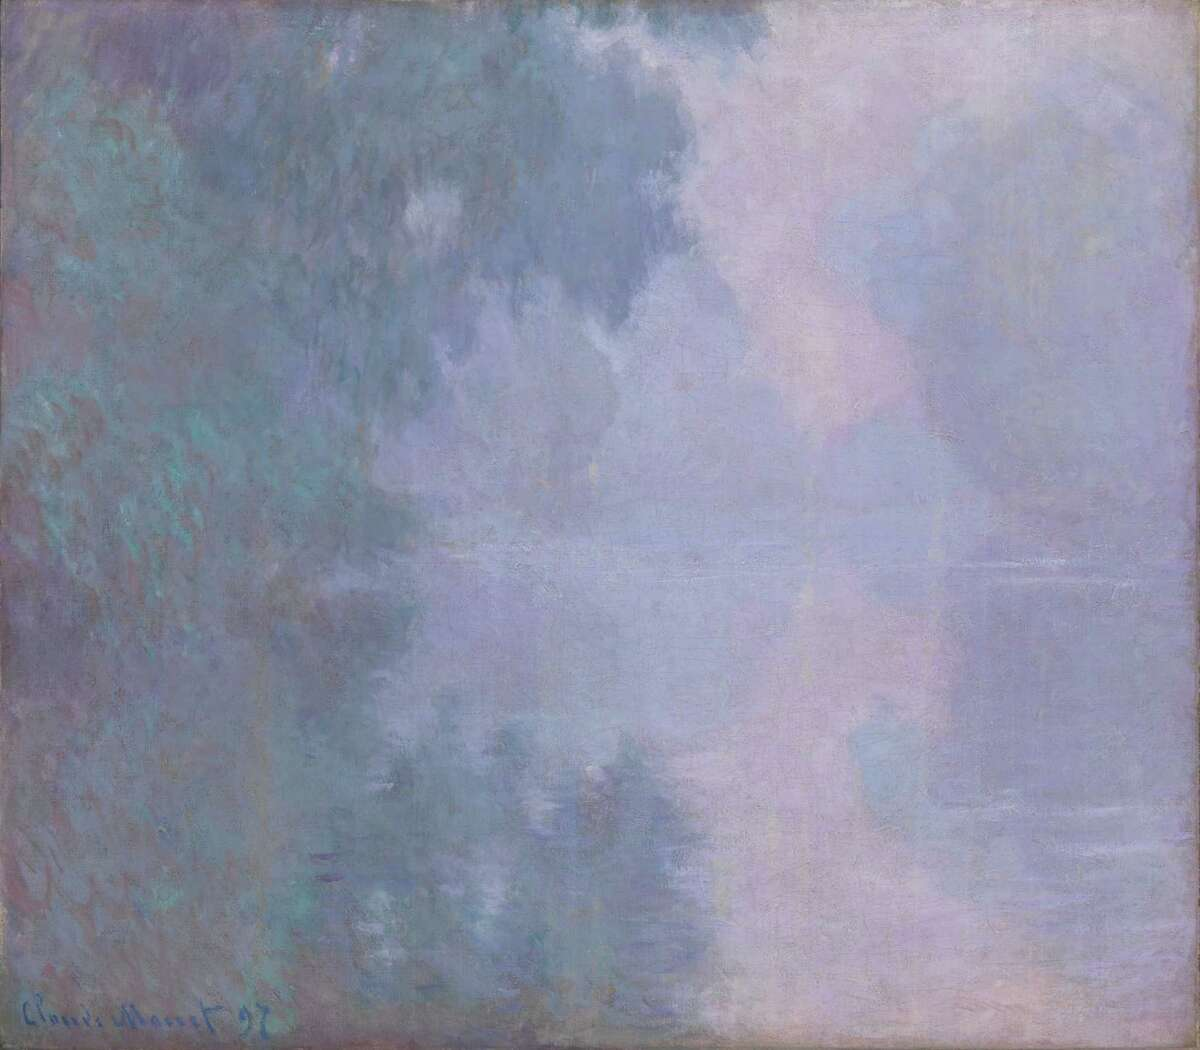 """Among paintings on view through Feb. 1 at the Museum of Fine Arts, Houston in the exhibition """"Monet and the Seine: Impressions of a River"""": Claude Monet, Morning on the Seine, Giverny, 1897, oil on canvas, Mead Art Museum, Amherst College, Bequest of Miss Susan Dwight Bliss, AC 1966.48"""